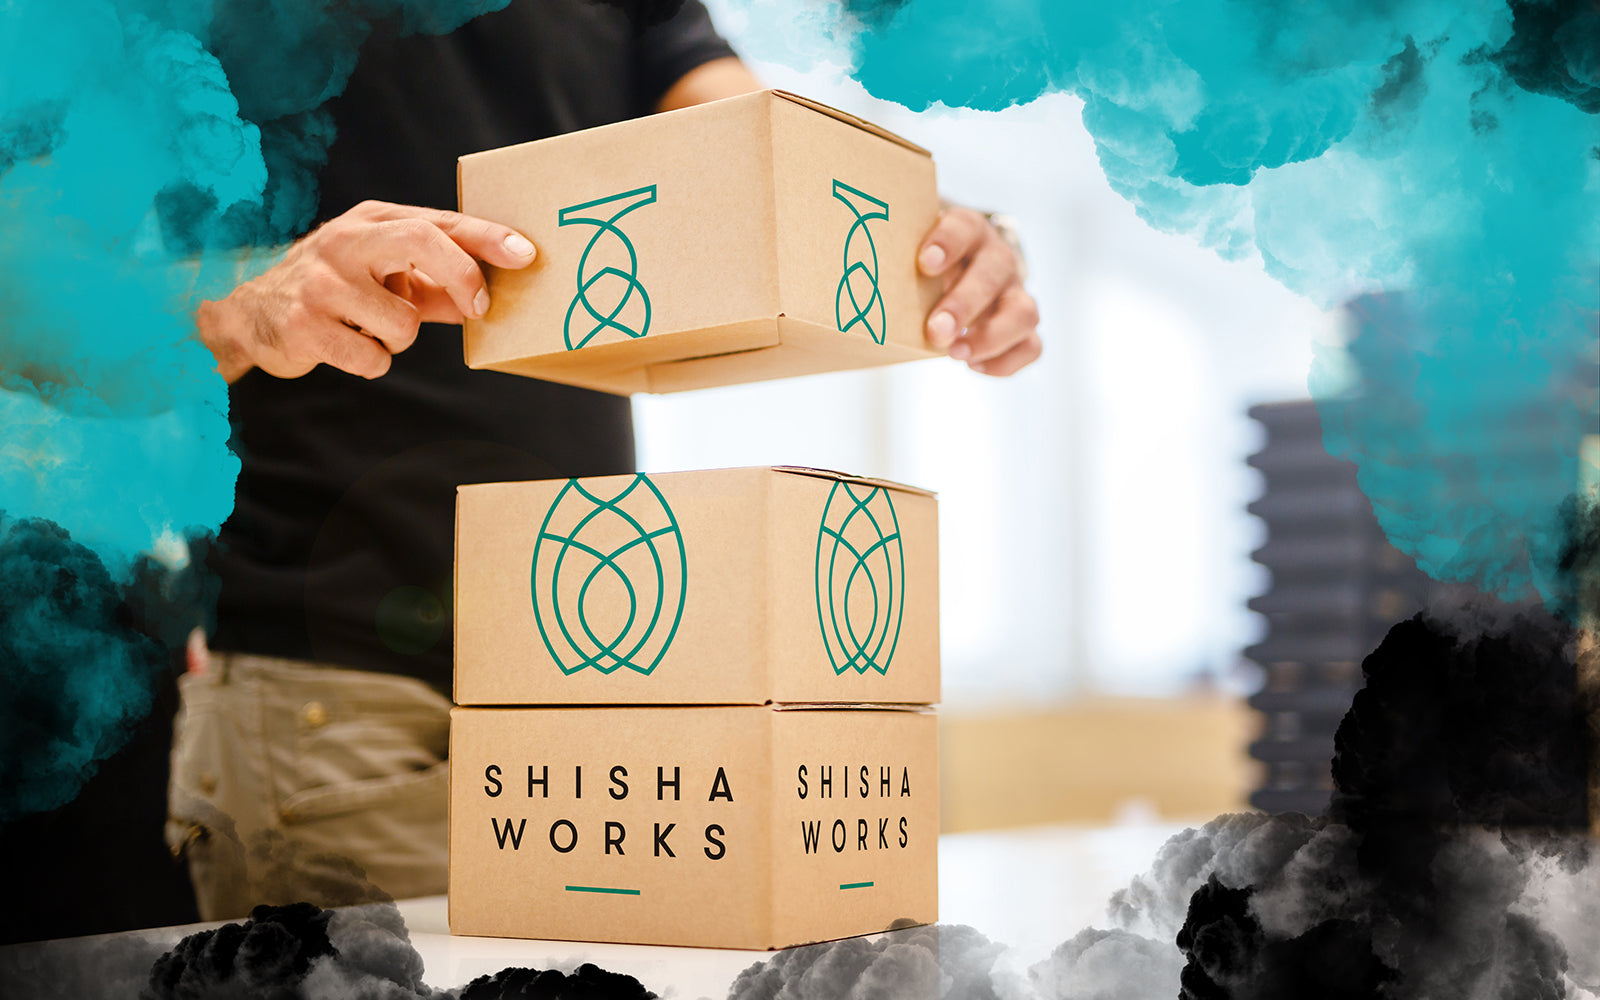 Image of Shisha Works packaging and boxes at warehouse